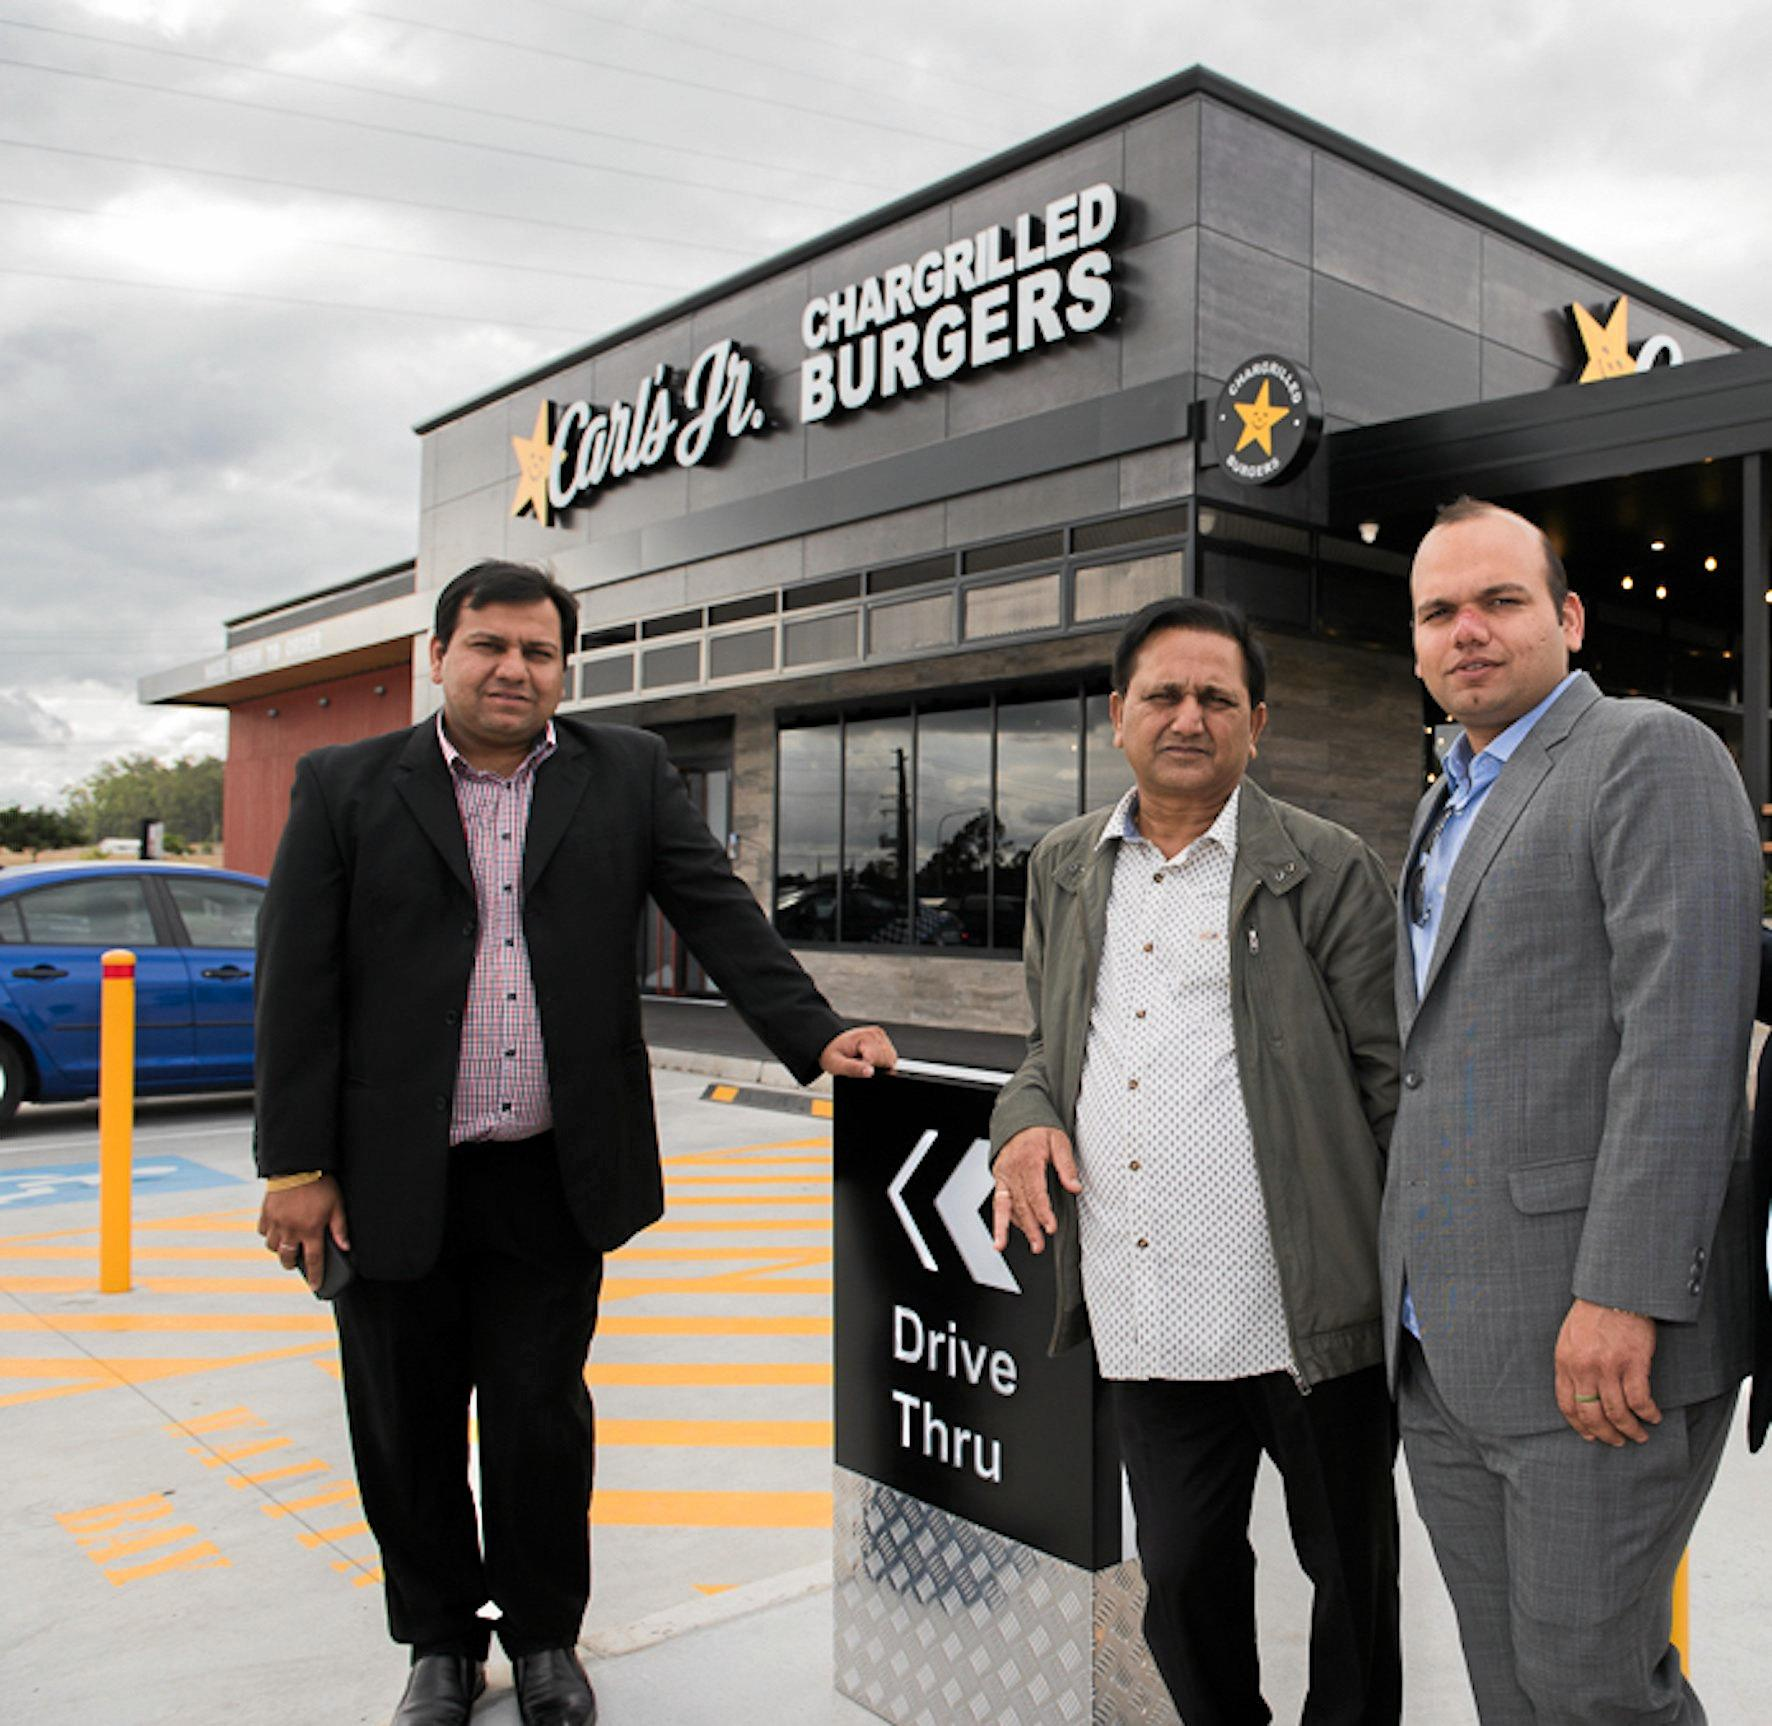 Bansal Brothers Vishal and Gaurav with their father Premnath, at the Carl's Jr store that started it all on Redbank Plains Road.